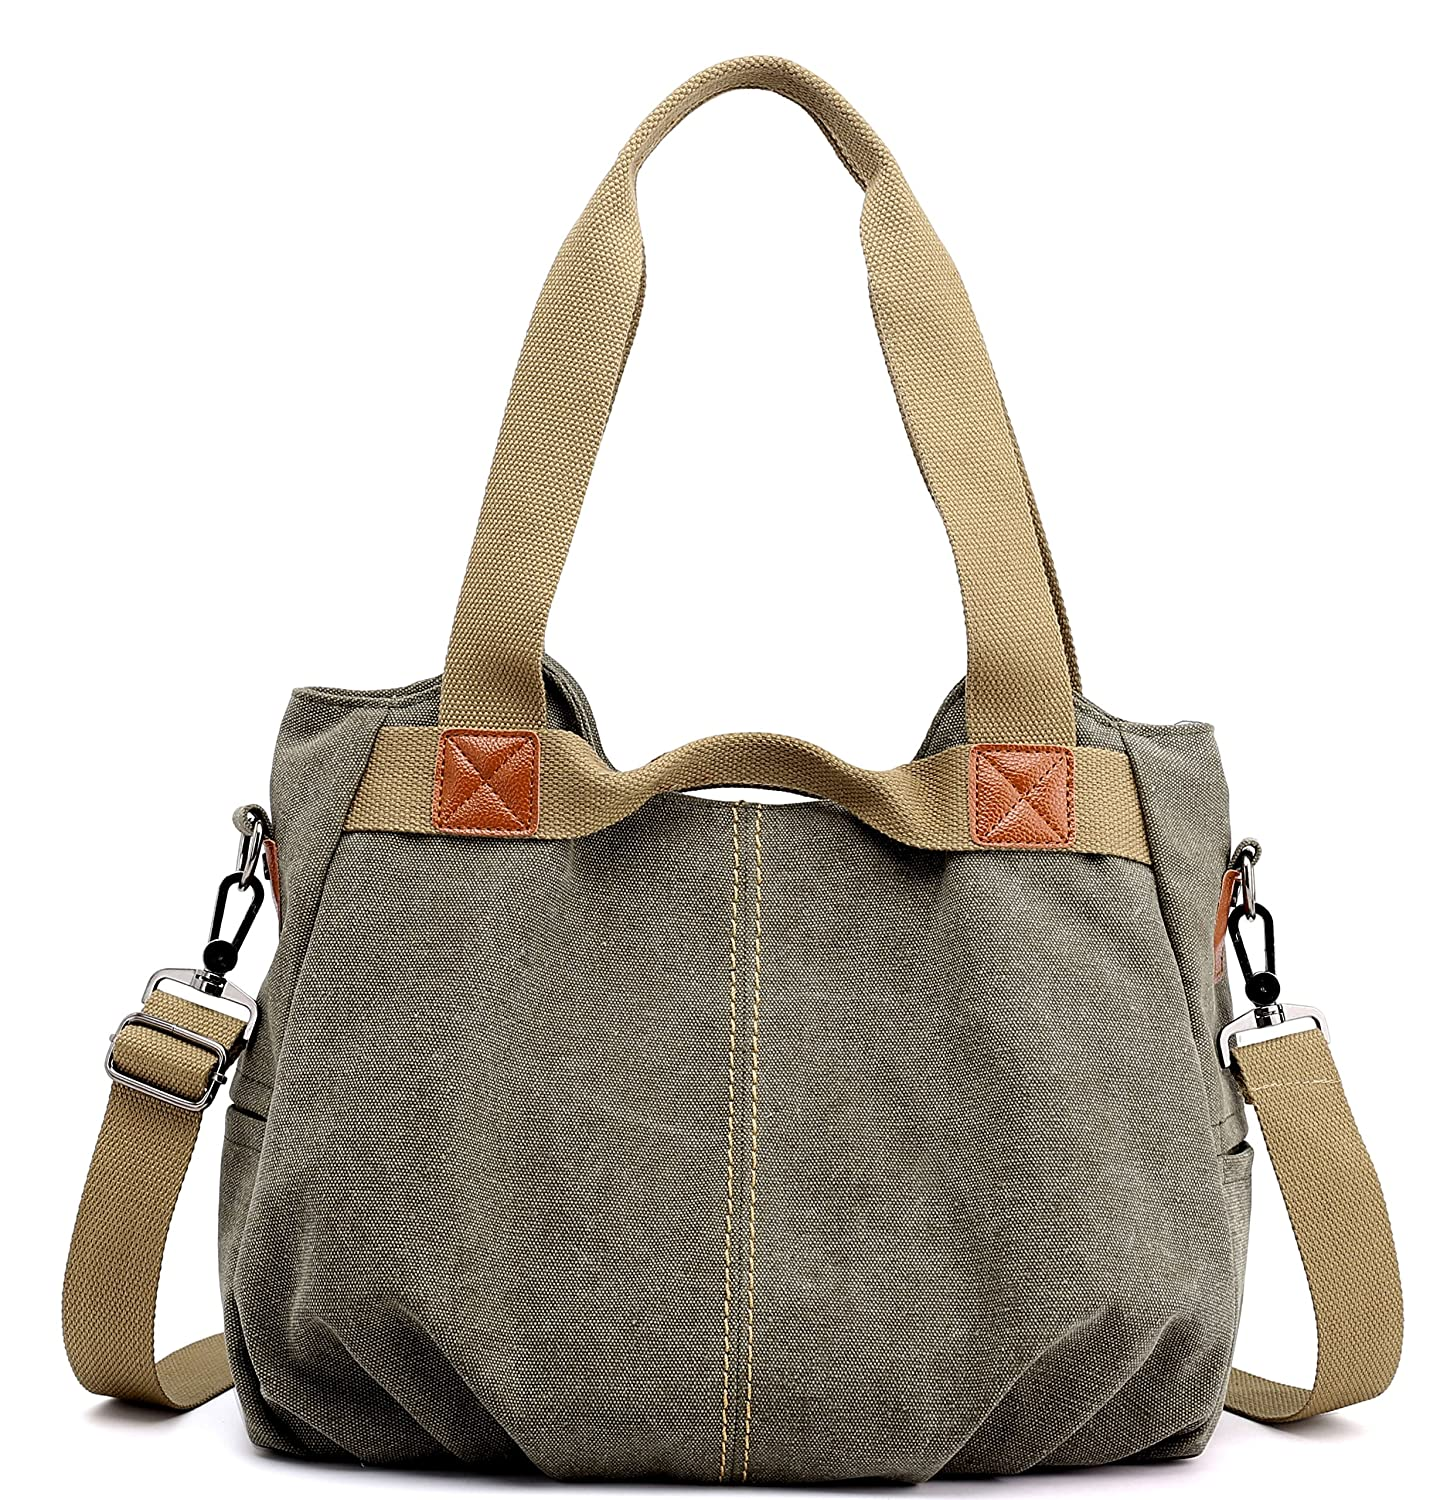 fa965f8c59 Amazon.com: Z-joyee Women's Ladies Casual Vintage Hobo Canvas Daily Purse  Top Handle Shoulder Tote Shopper Handbag Satchel Bag: Shoes